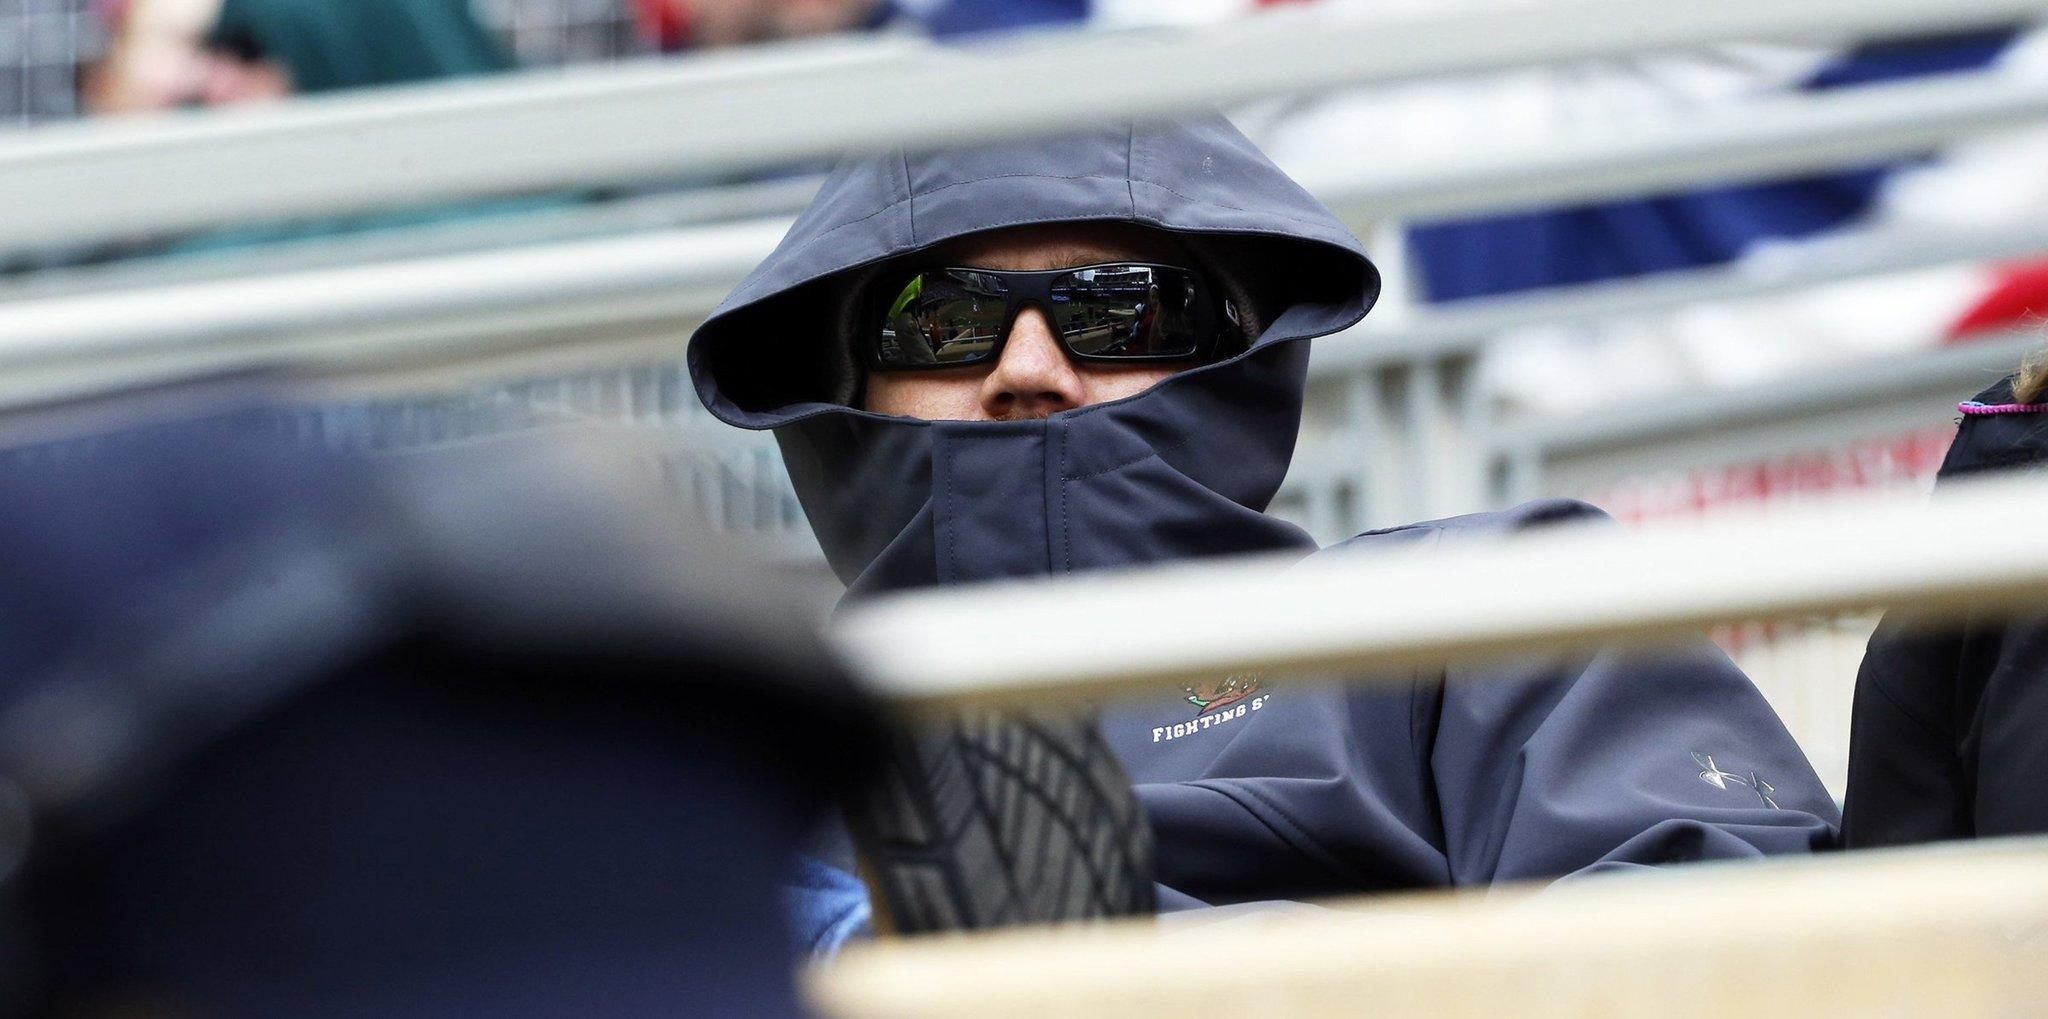 Minnesota Twins fans bundled up against the cold during a game between the Twins and Kansas City Royals.